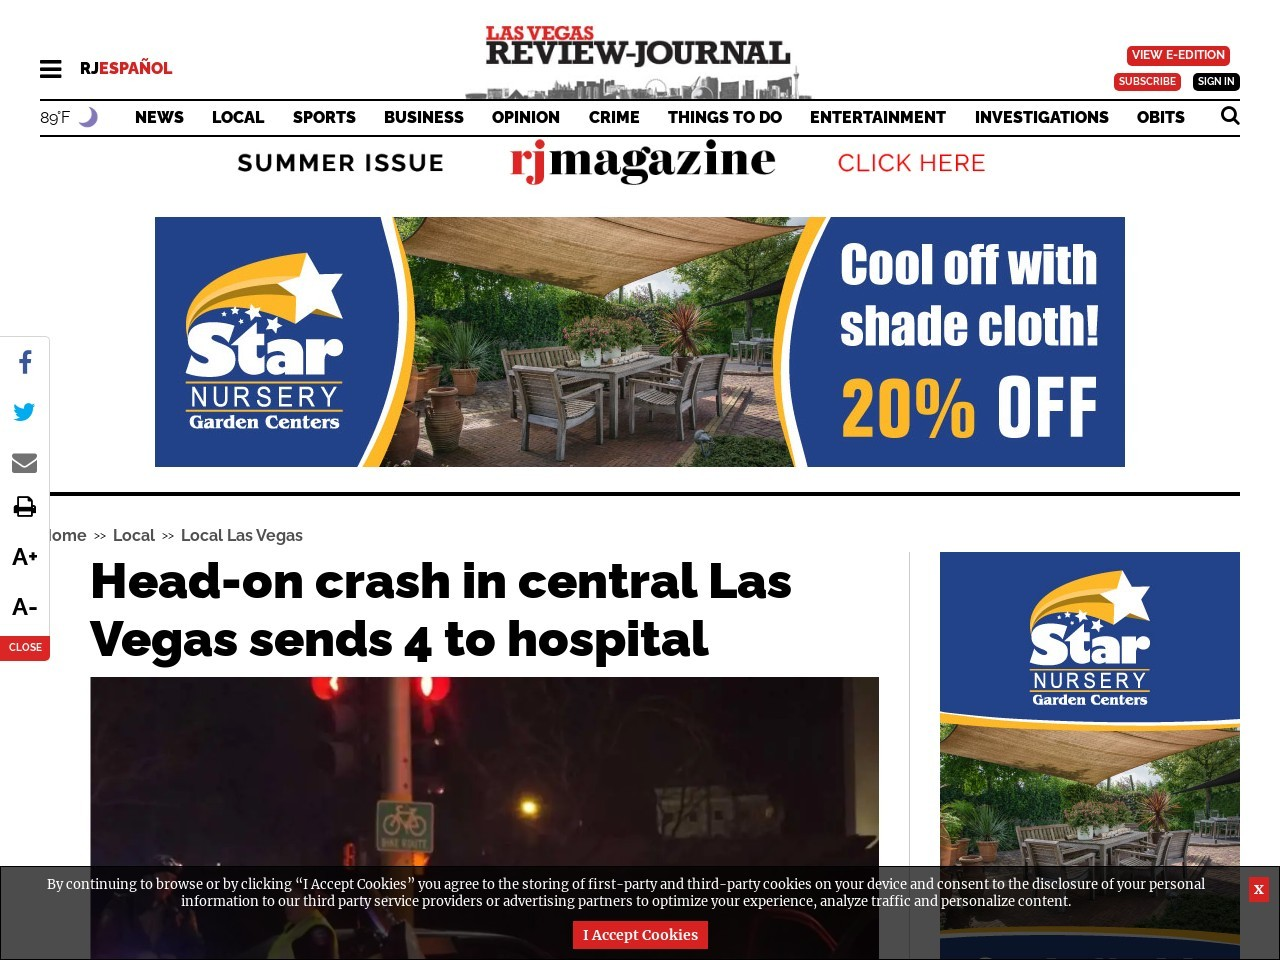 Head-on crash in central Las Vegas sends 4 to hospital